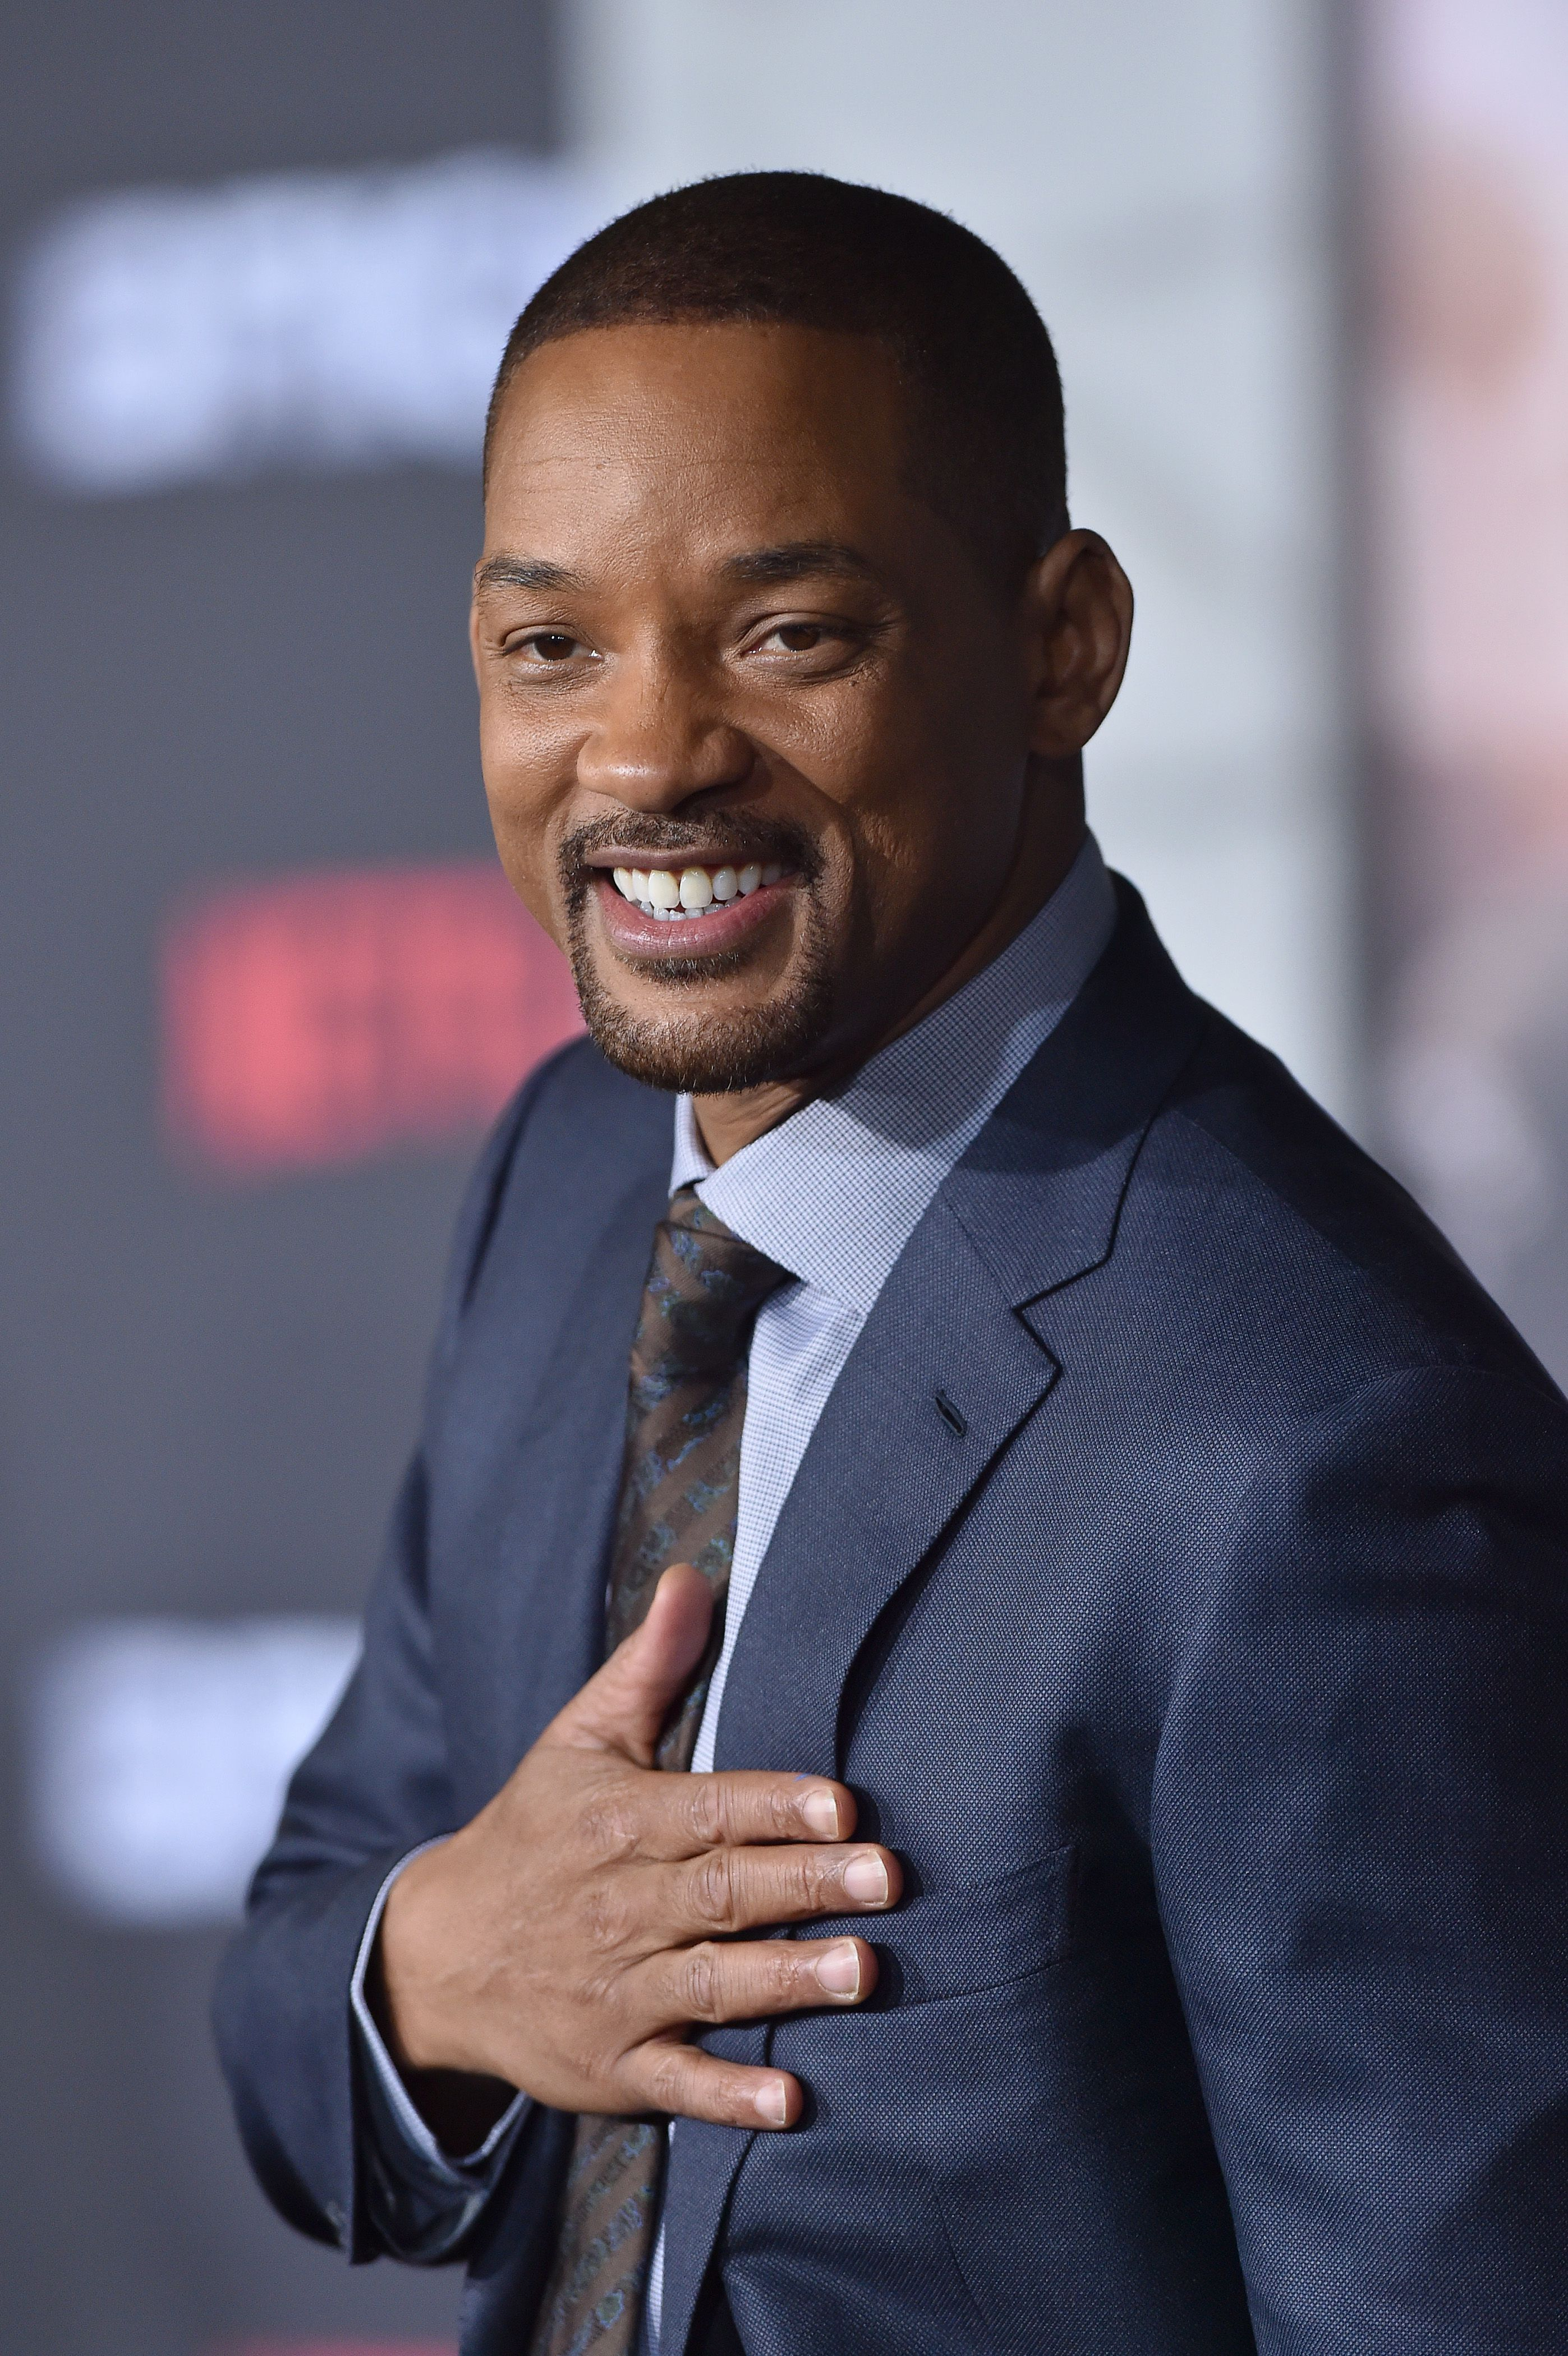 Will Smith Launches Socially-Conscious Venture Capital Fund; Takes Vacay Selfie With Entire Family